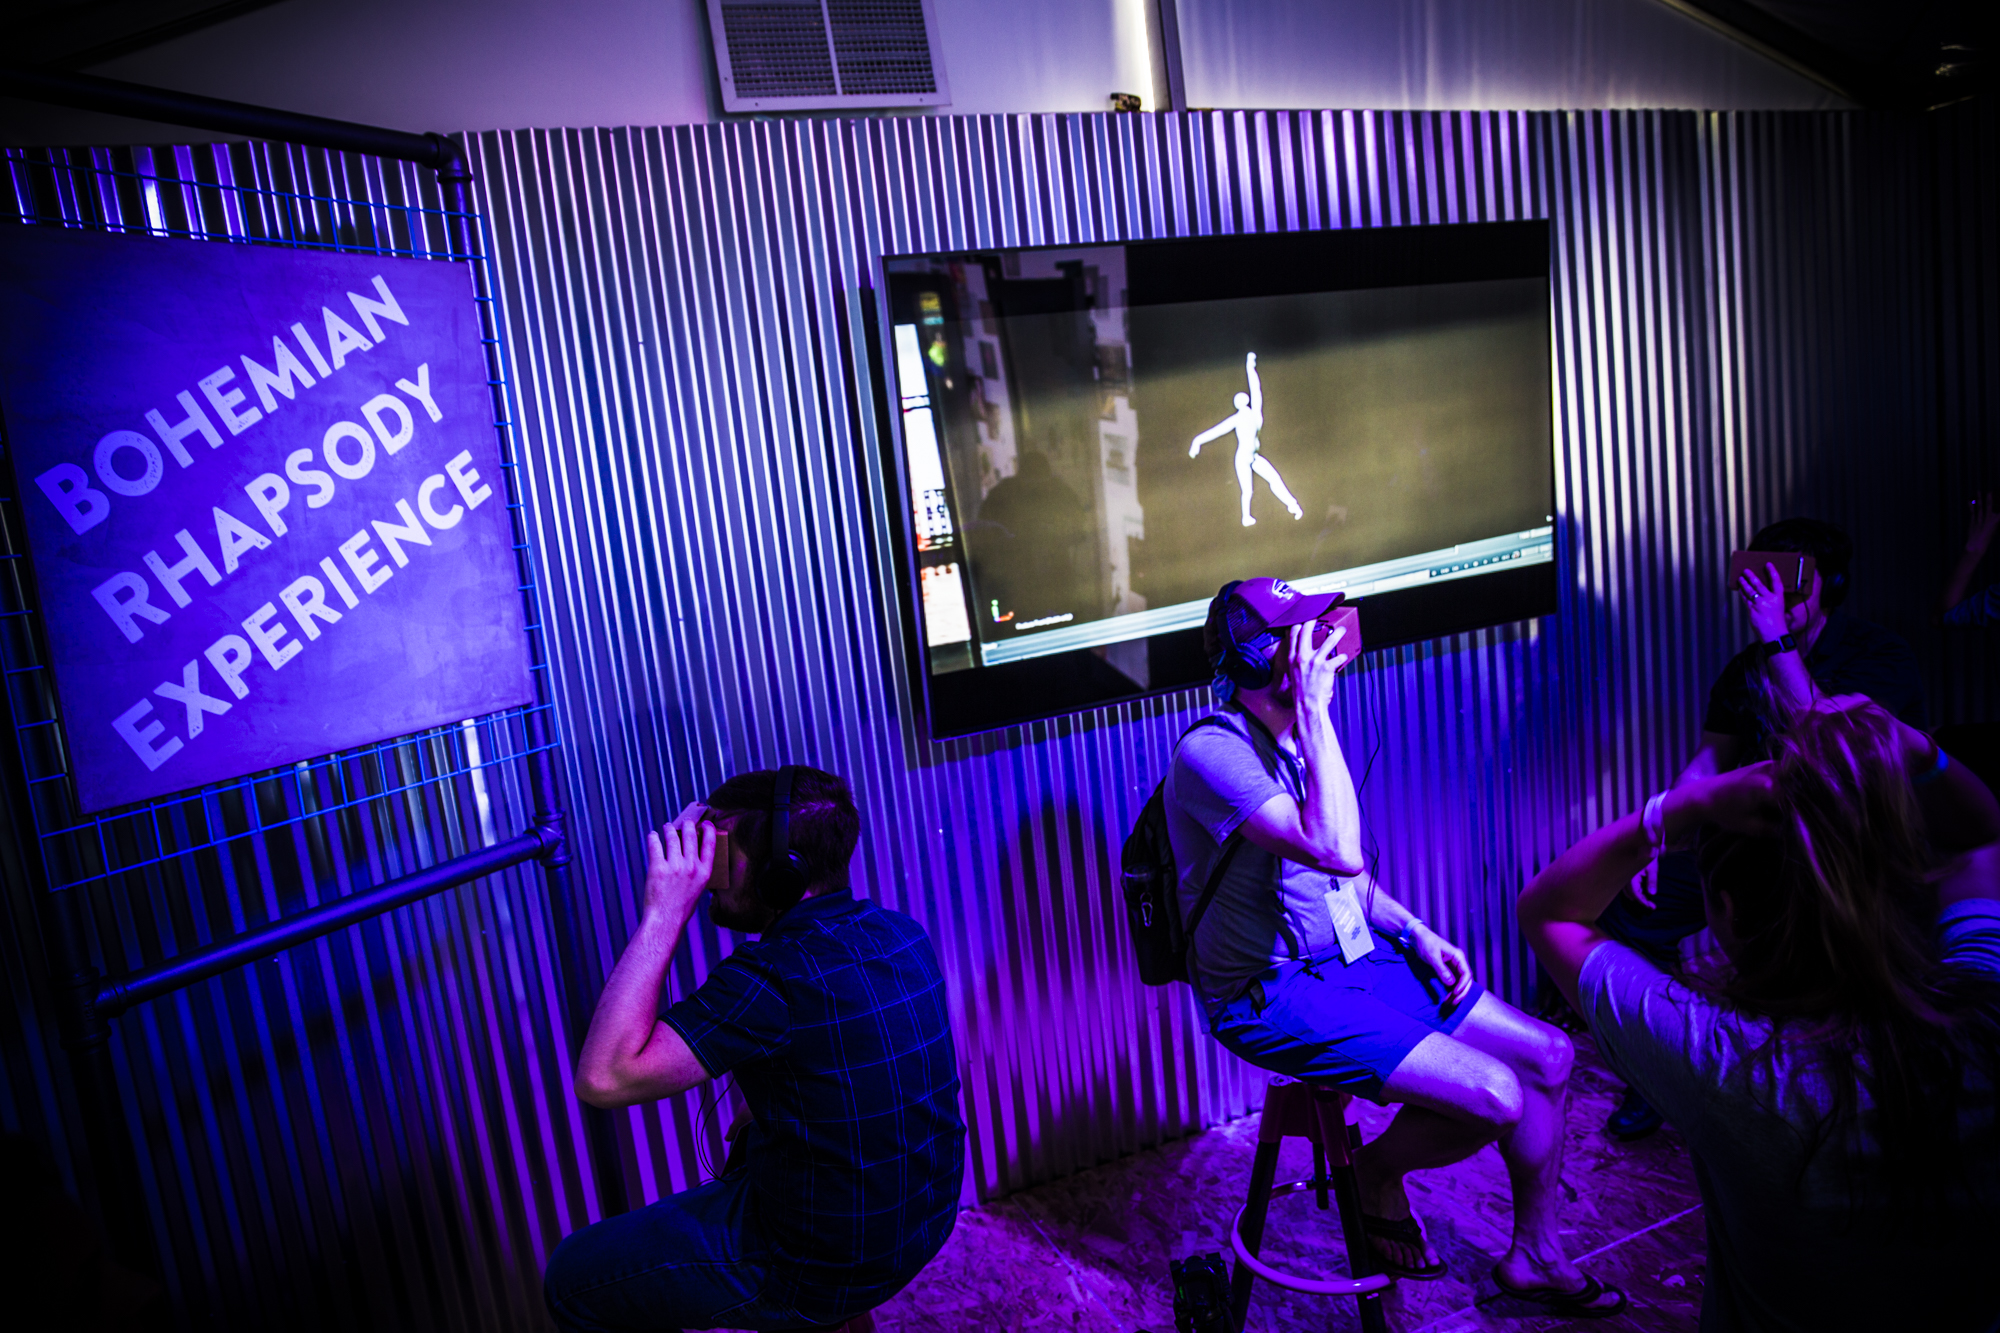 <p>Inside the Google Play Music room, the Bohemian Rhapsody Experience treated Cardboard viewers to a behind-the-scenes VR dance recital.</p>